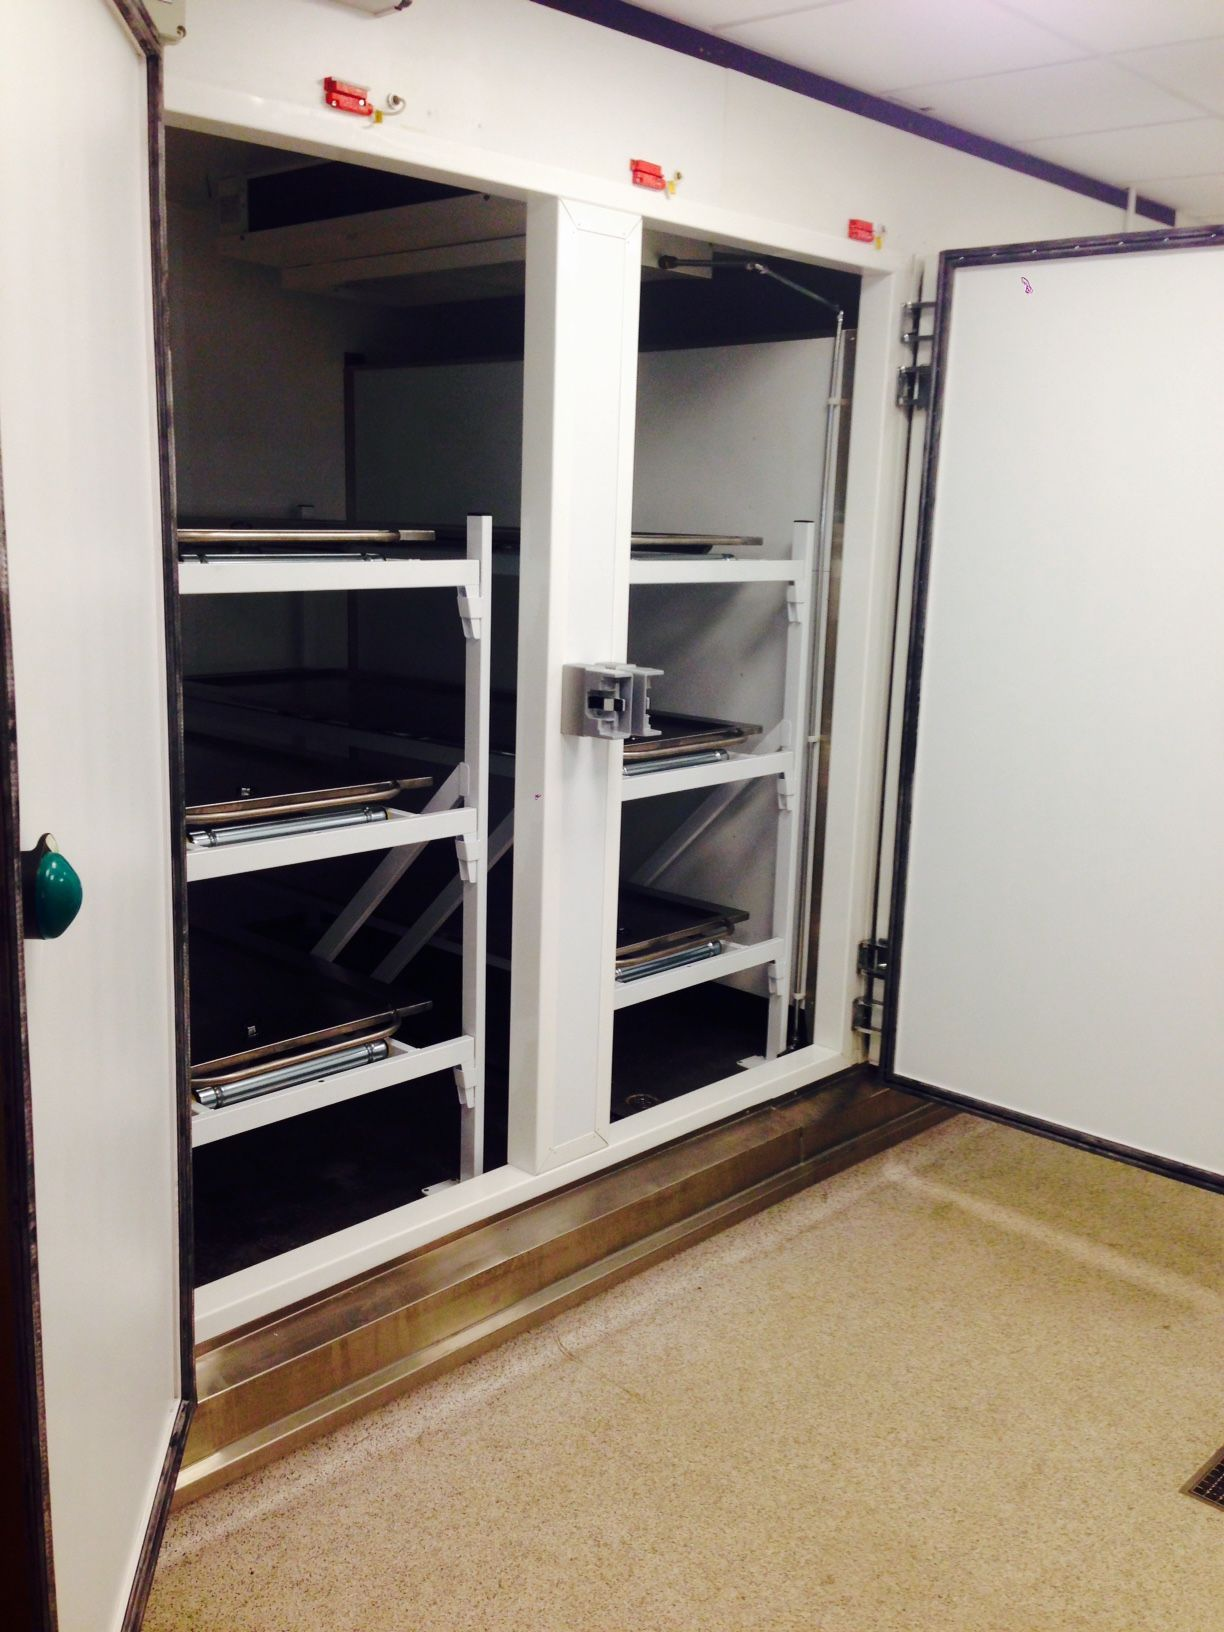 Mortuary fridge for storing deceased people in a hospital